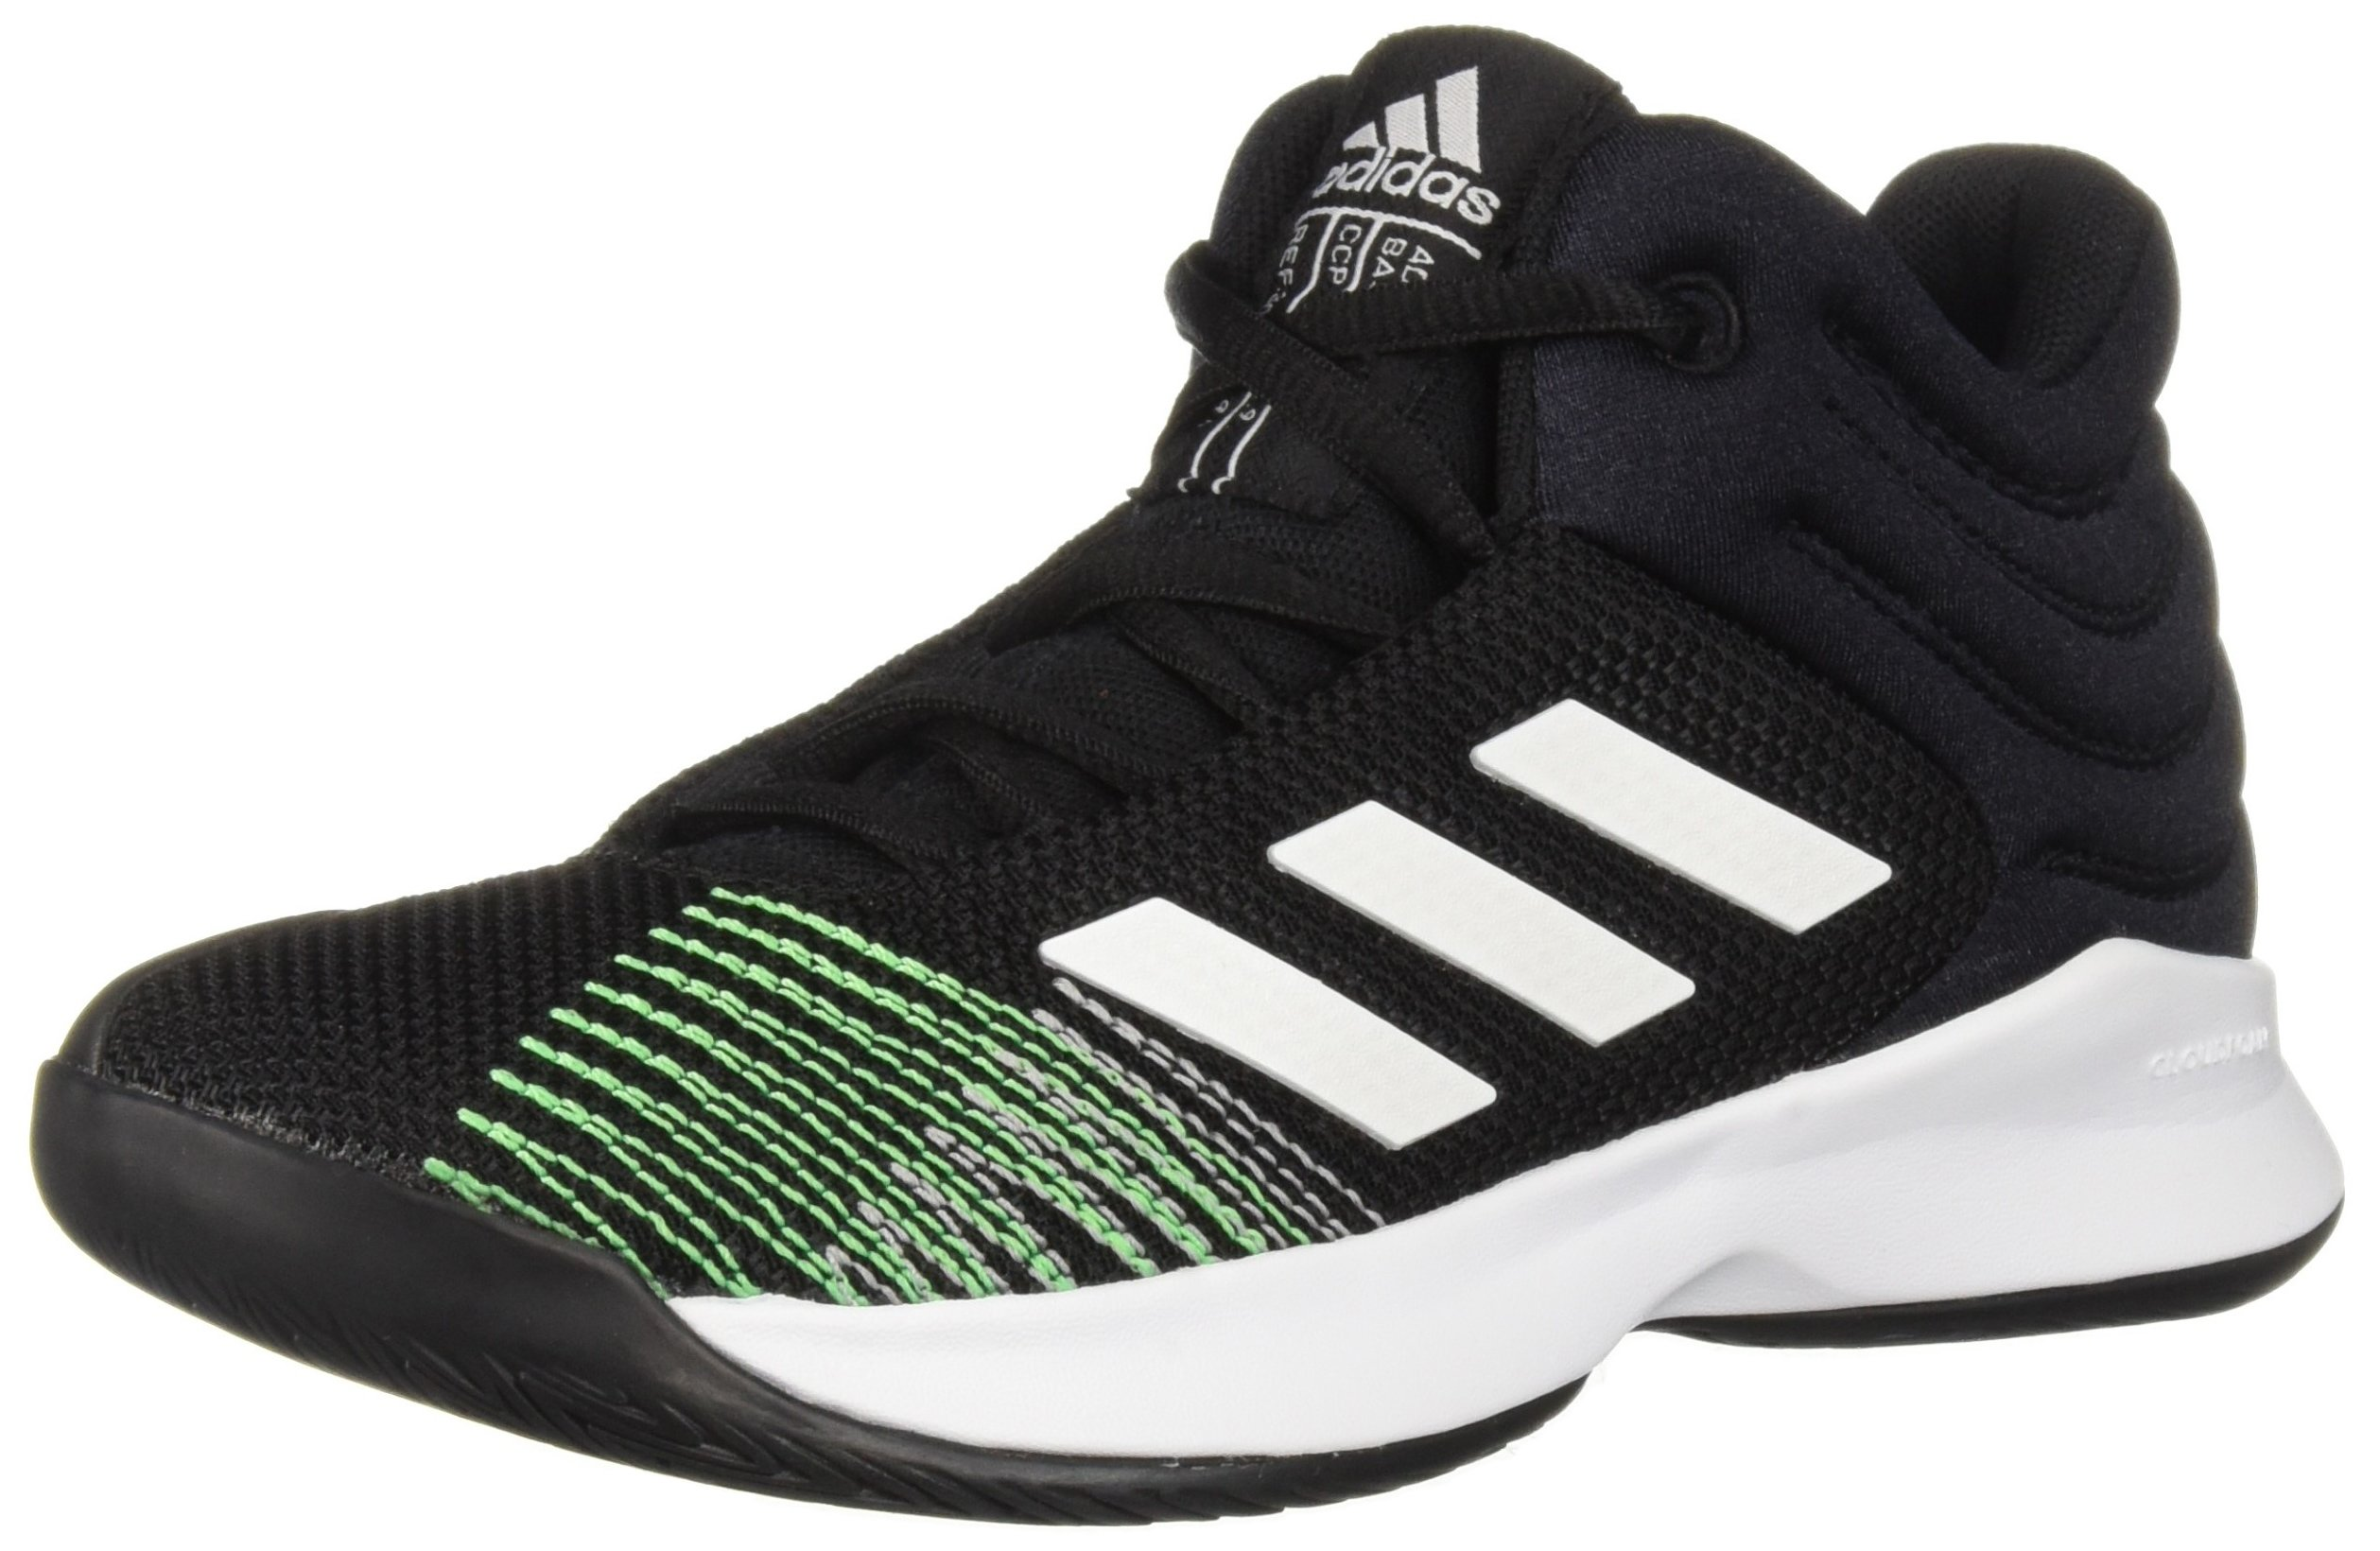 adidas Unisex Pro Spark 2018 Basketball Shoe, Black/White/Shock Lime, 2.5 M US Little Kid